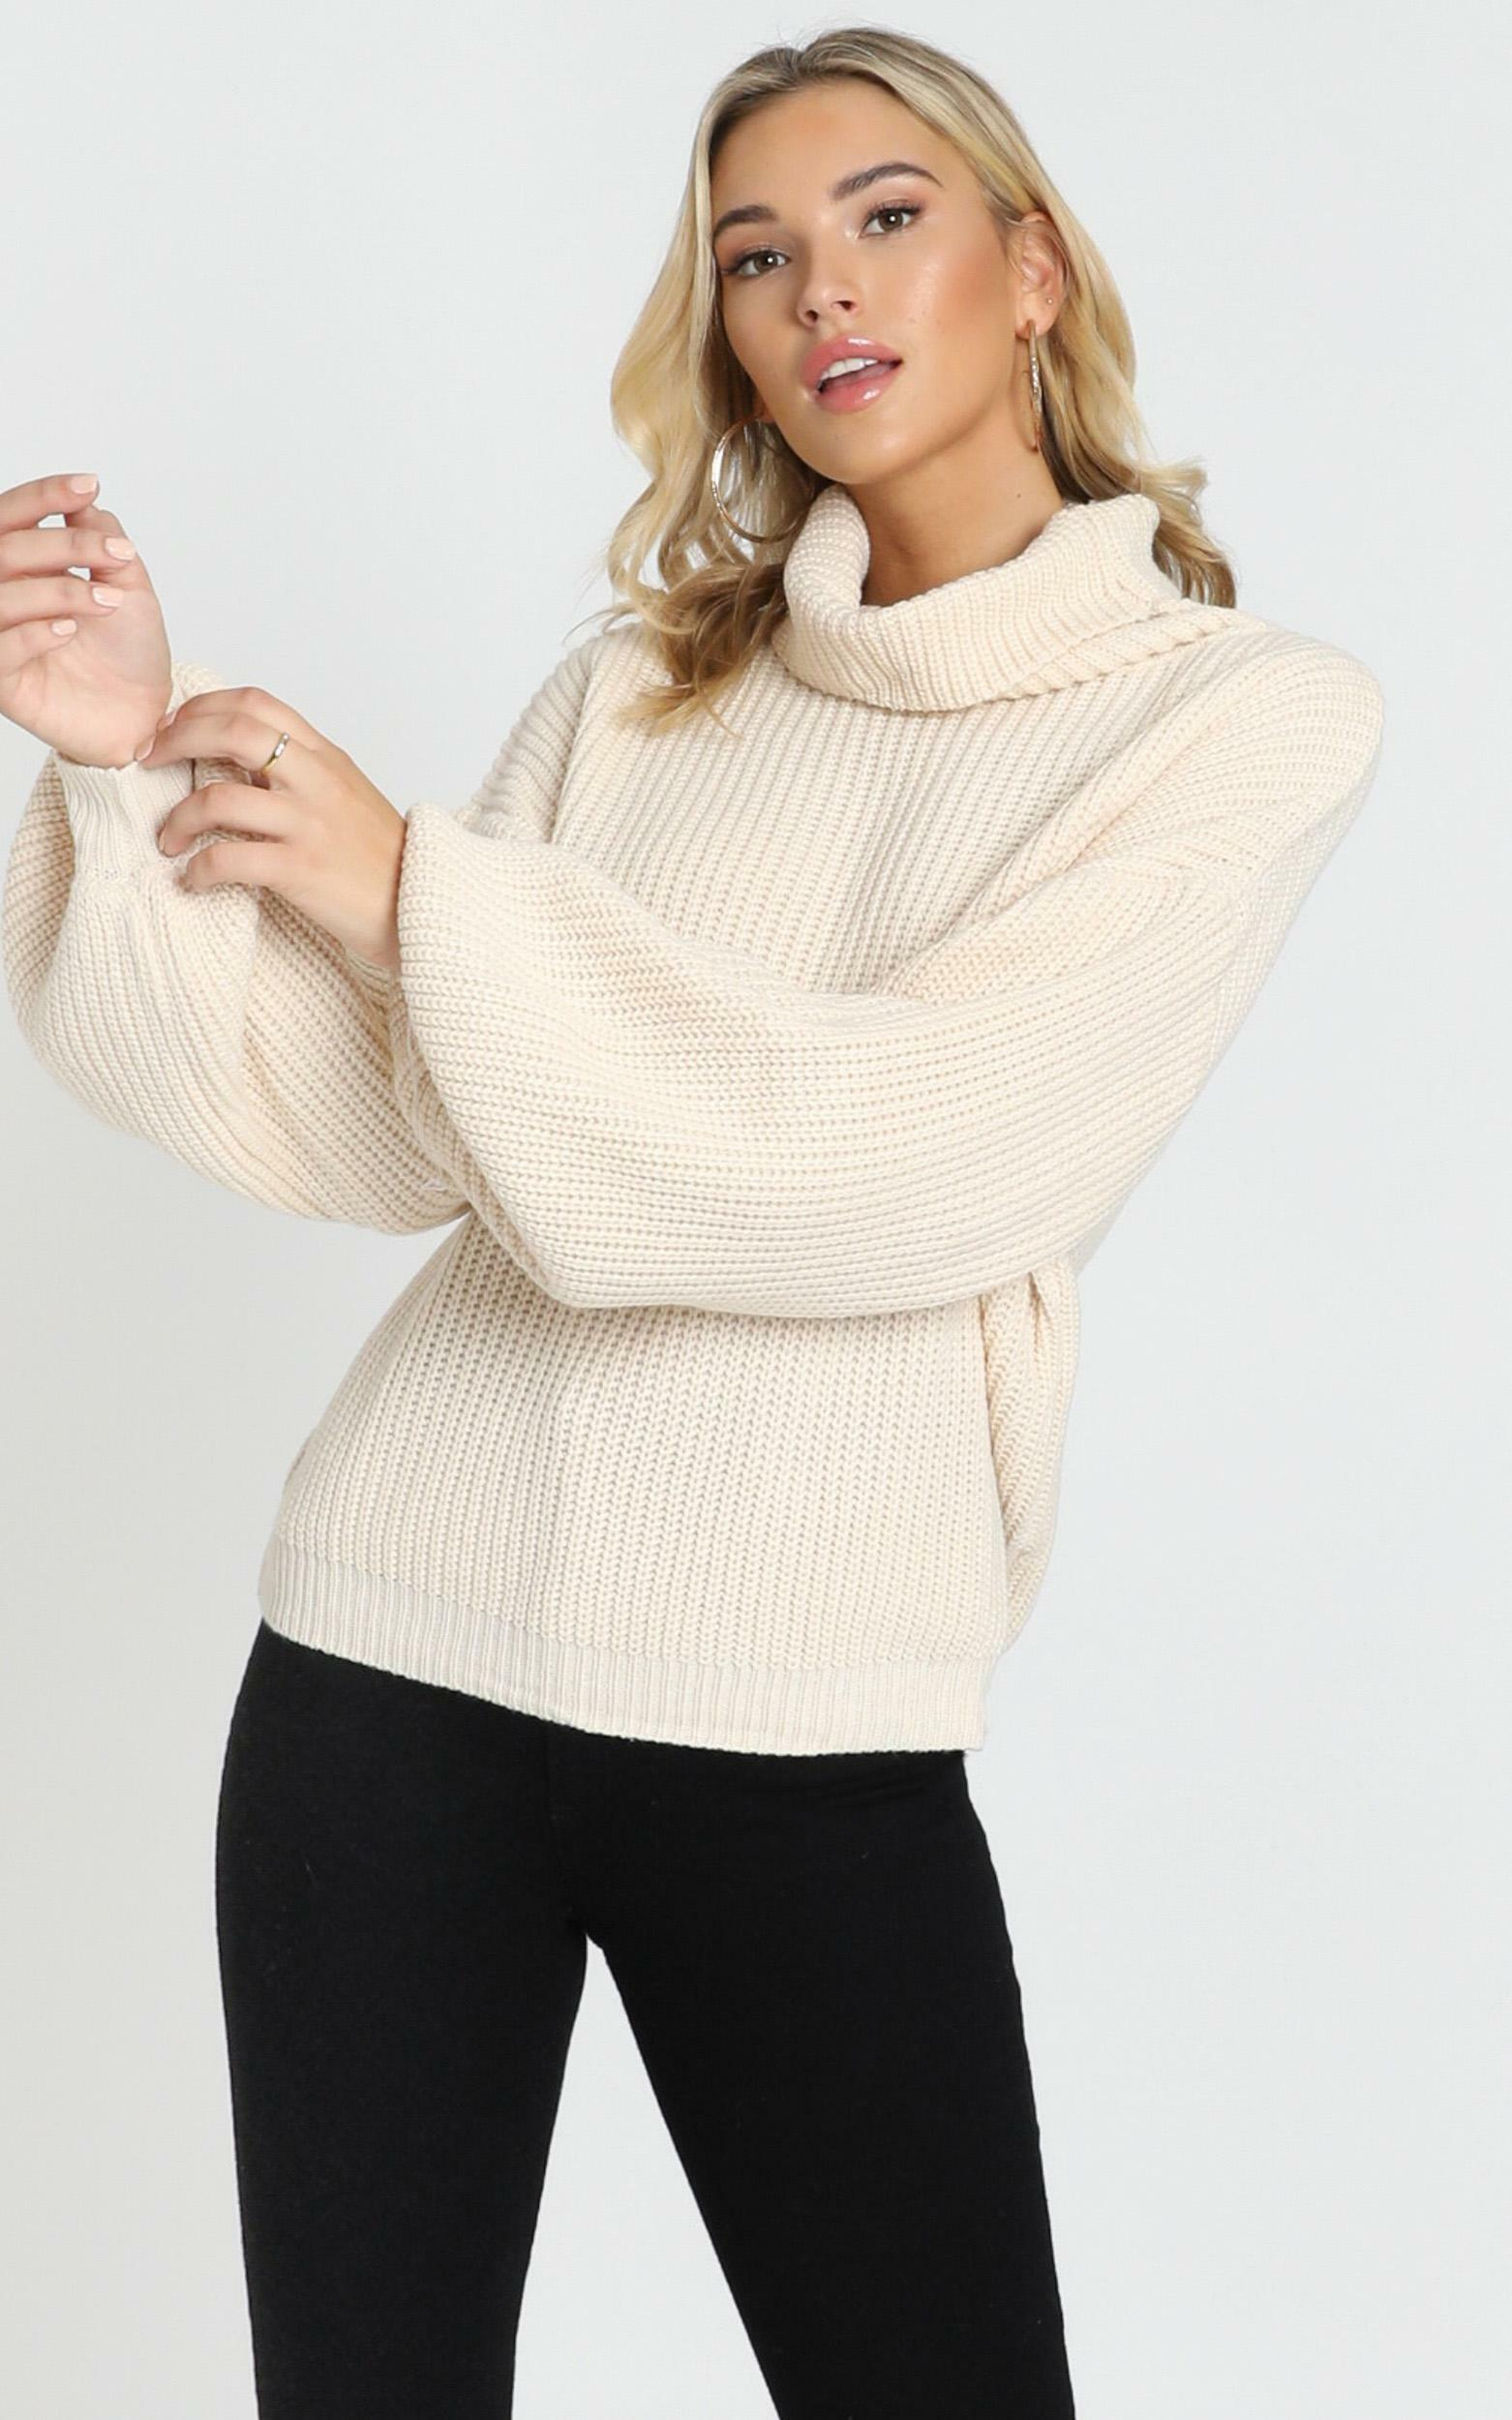 Steam Ahead Knit Jumper in cream - 20 (XXXXL), Cream, hi-res image number null